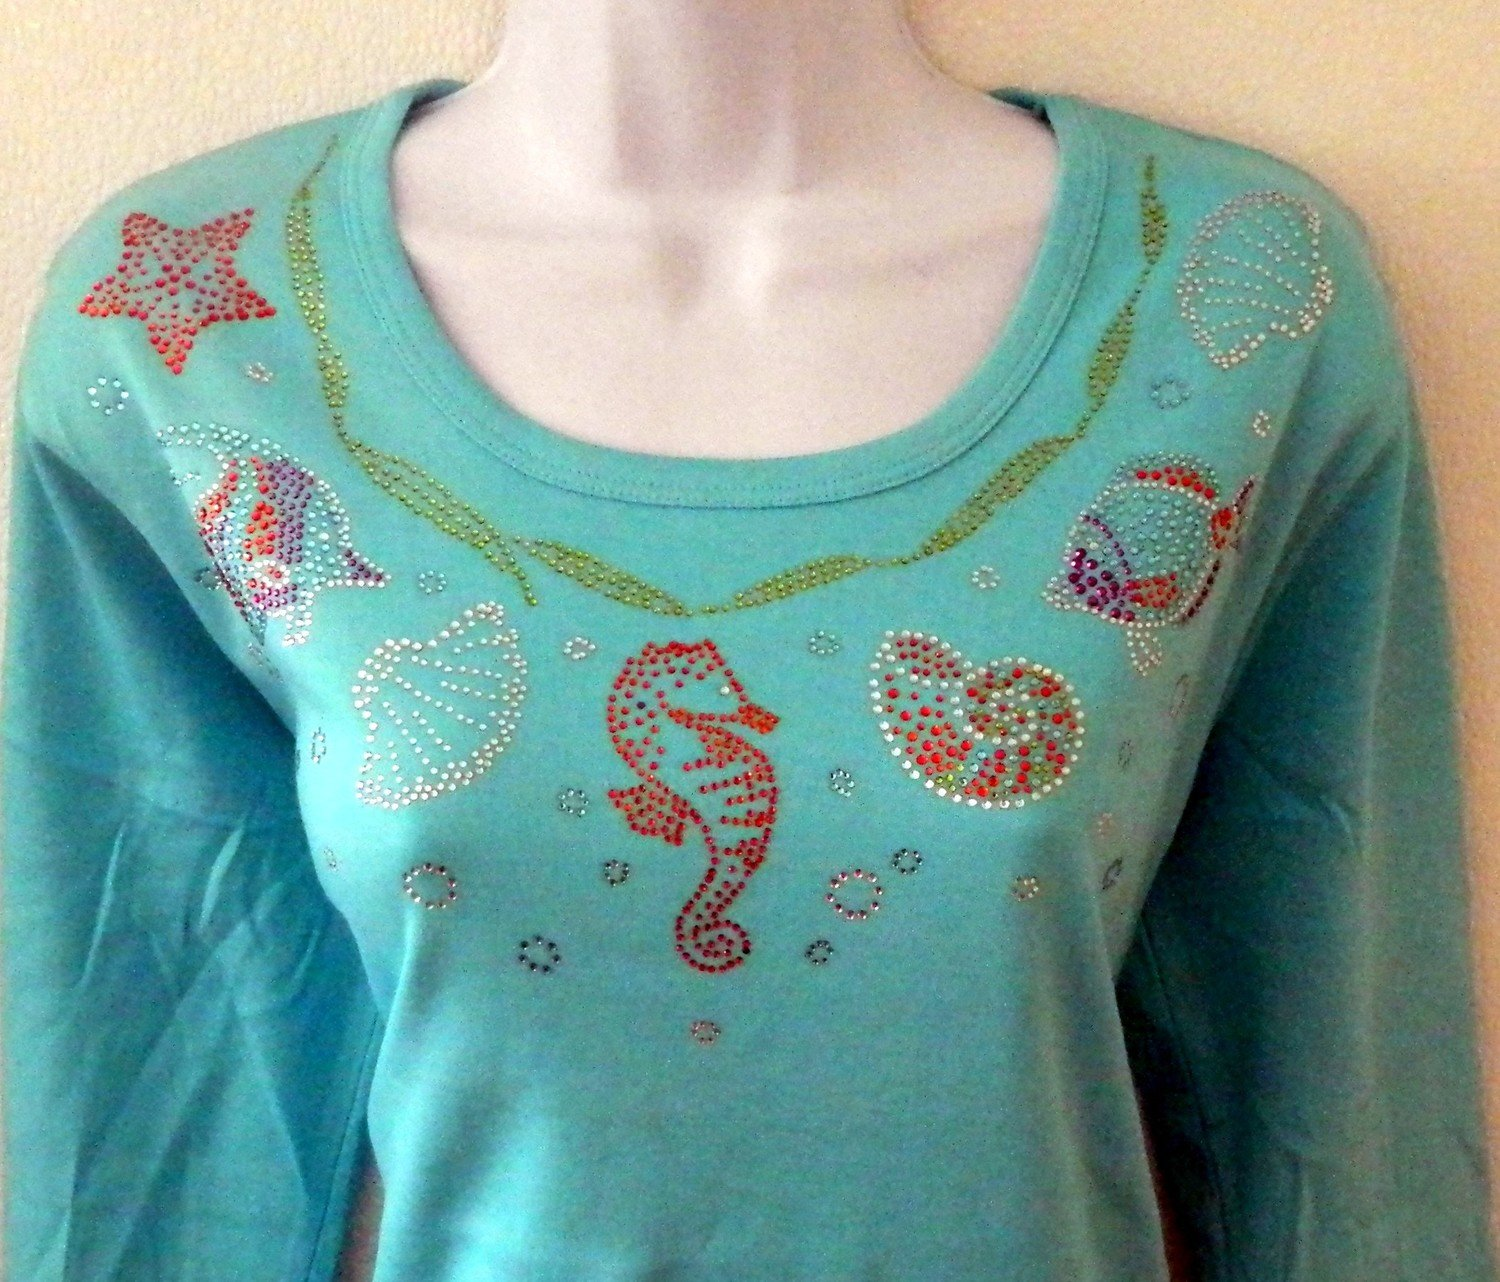 SEA LIFE   Round Neckline  - 3 pieces  design embellished sleeves